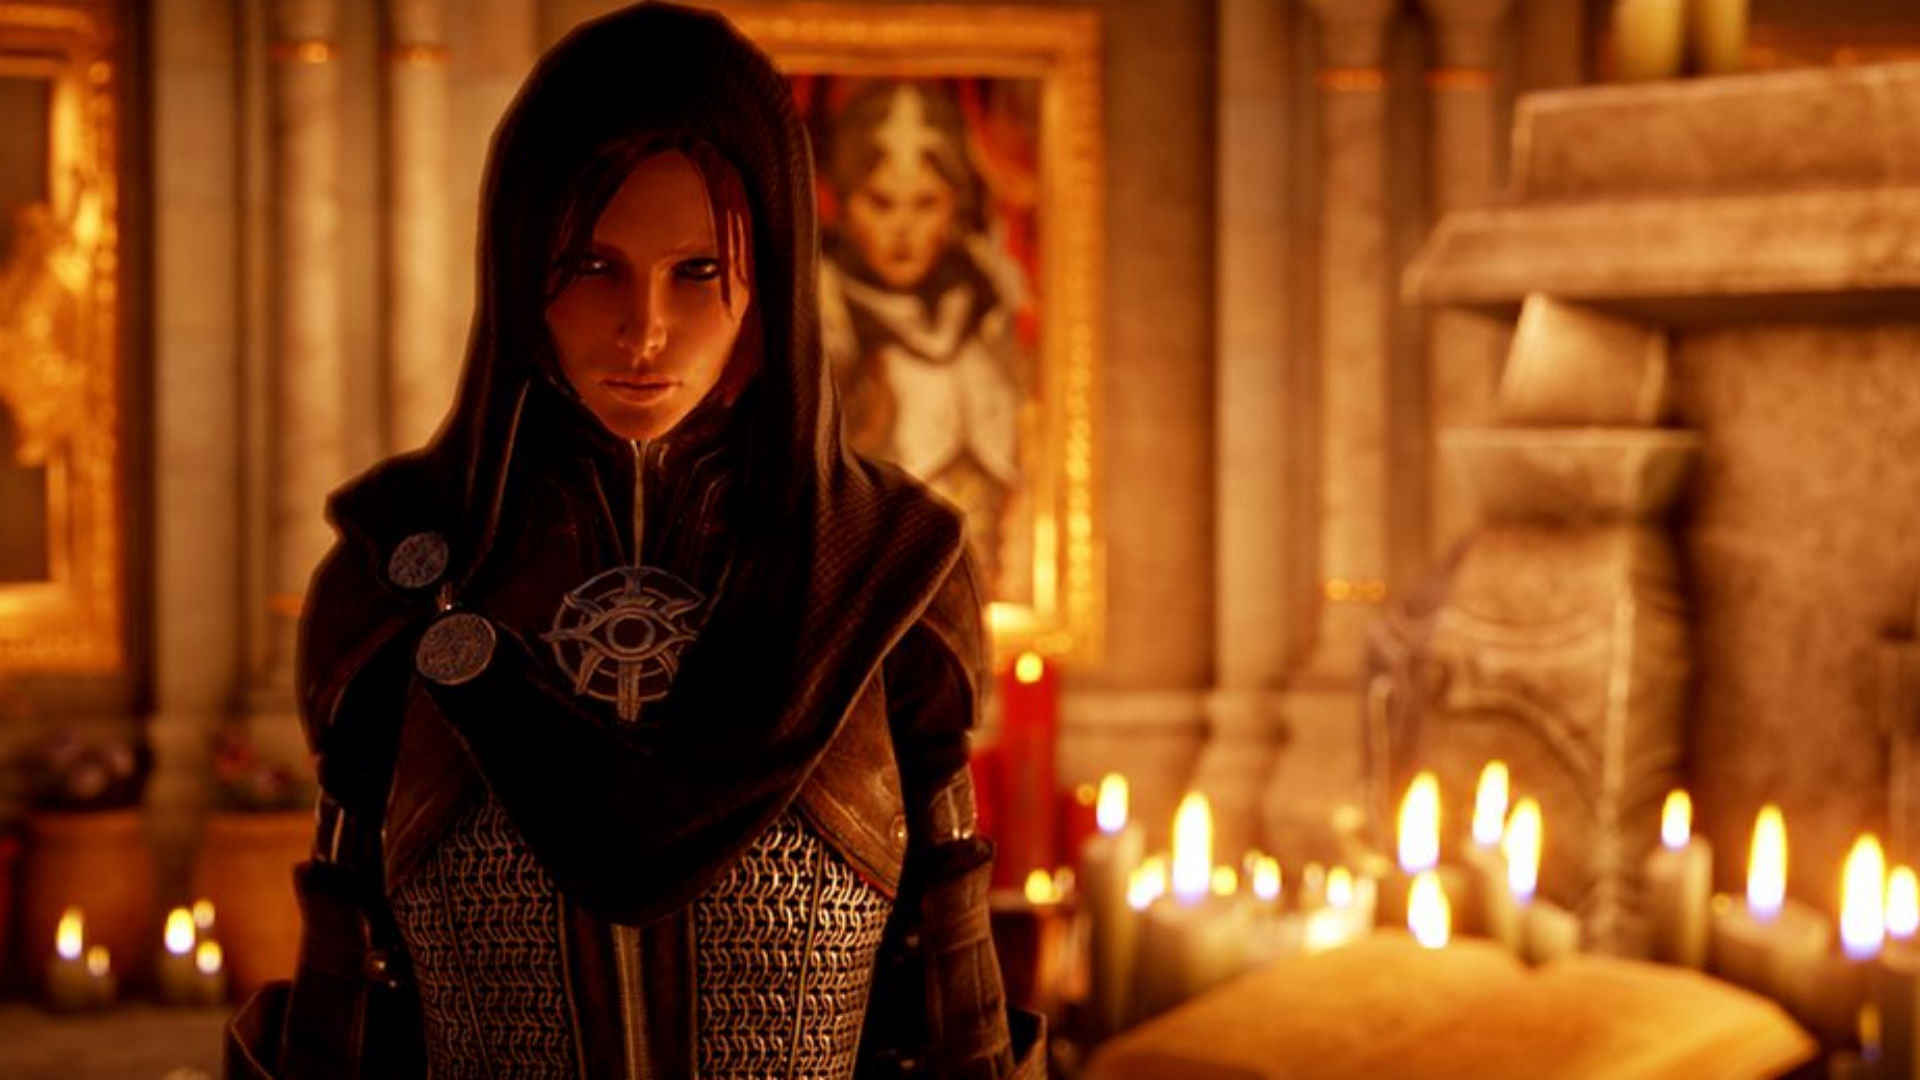 Dragon Age 4 and Mass Effect 5 will not be at EA's July showcase